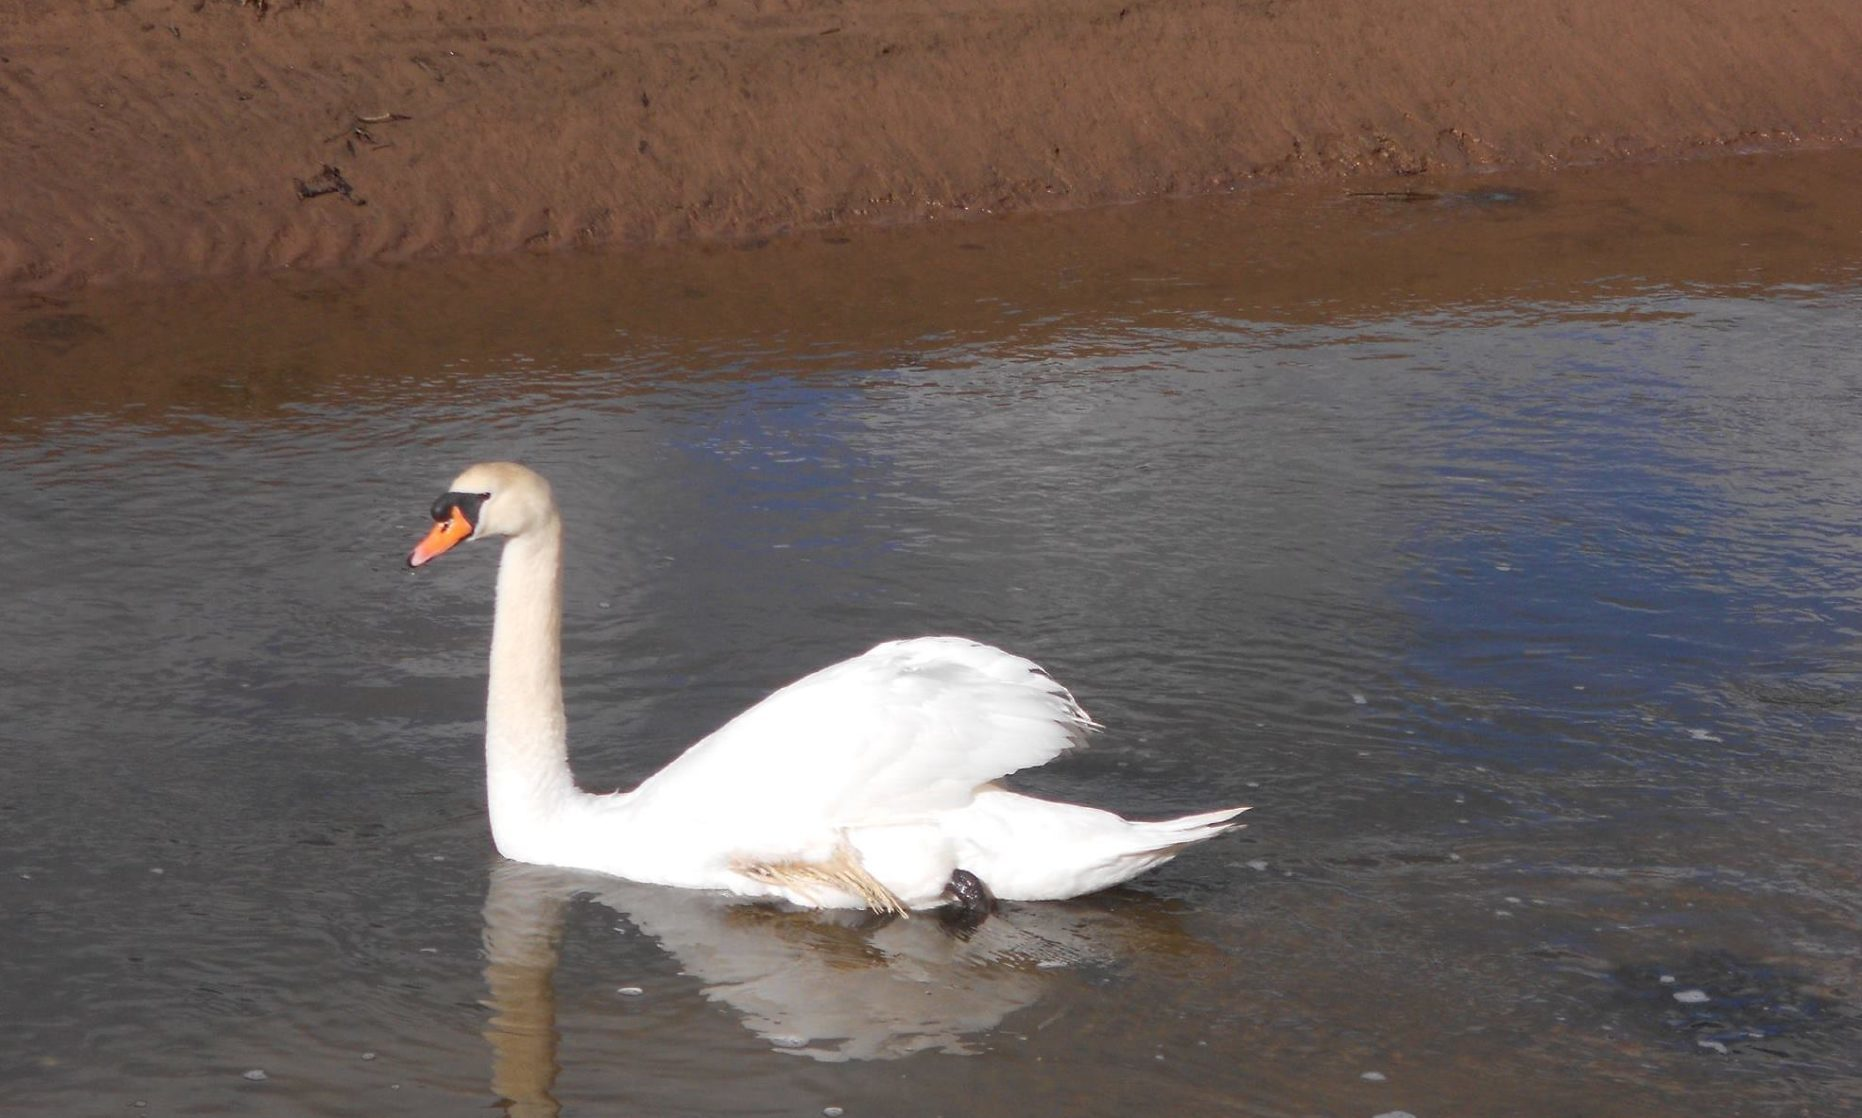 Jocky the cob mute swan who has been left with a deformed wing due to a high-carb diet. He lives in the Eden Estuary near Guardbridge.